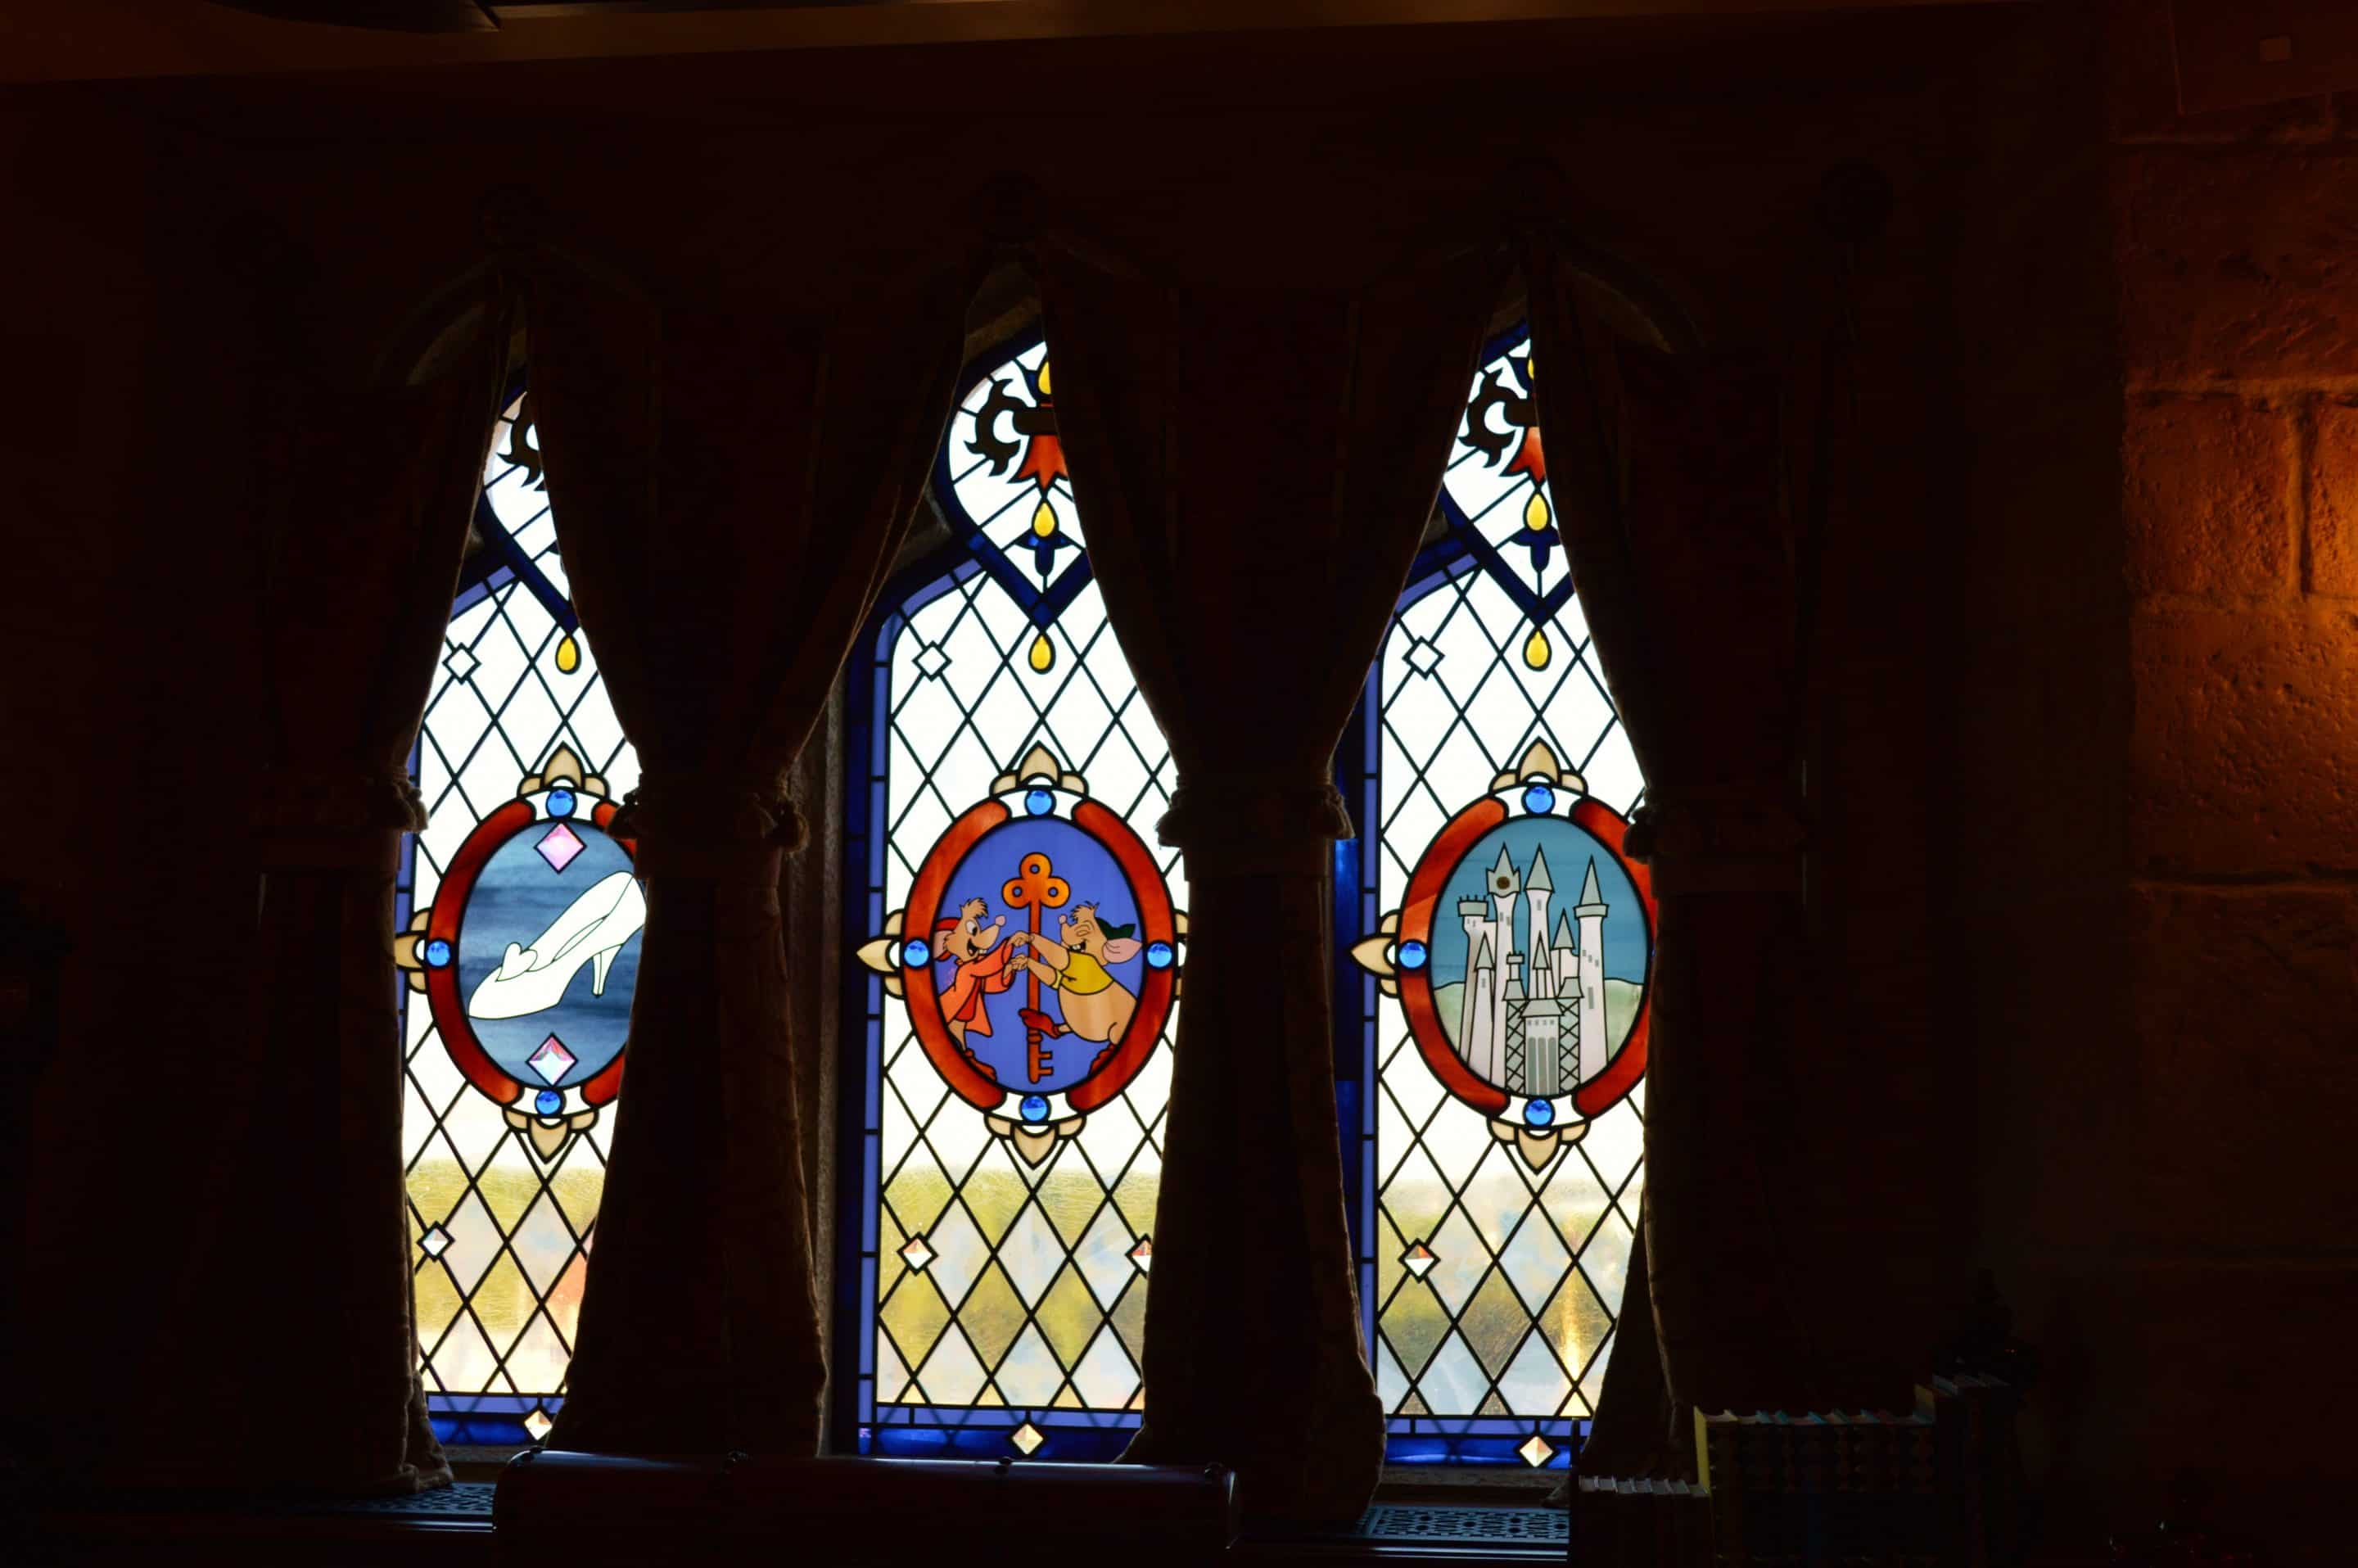 Limited Time Magic: Cinderella Castle Suite Tour